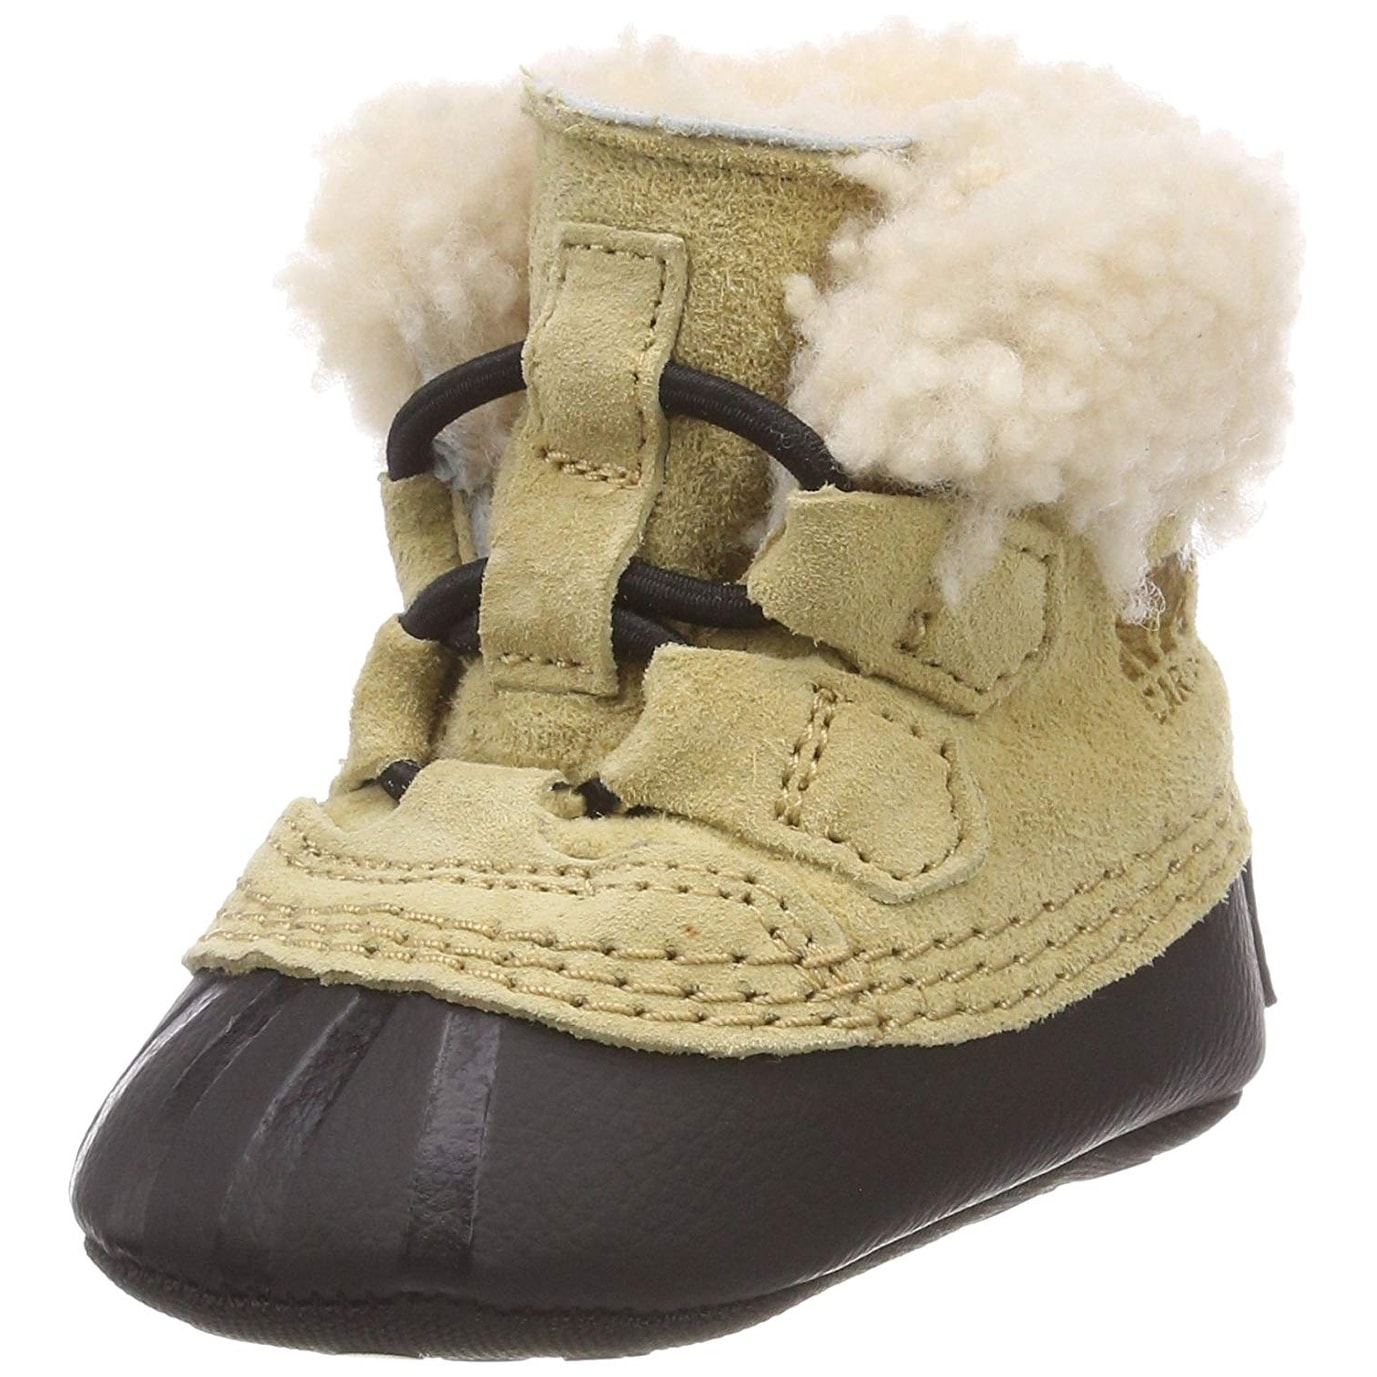 2 Sorel Caribootie Infant Silver Genuine Shearling crib shoe sz